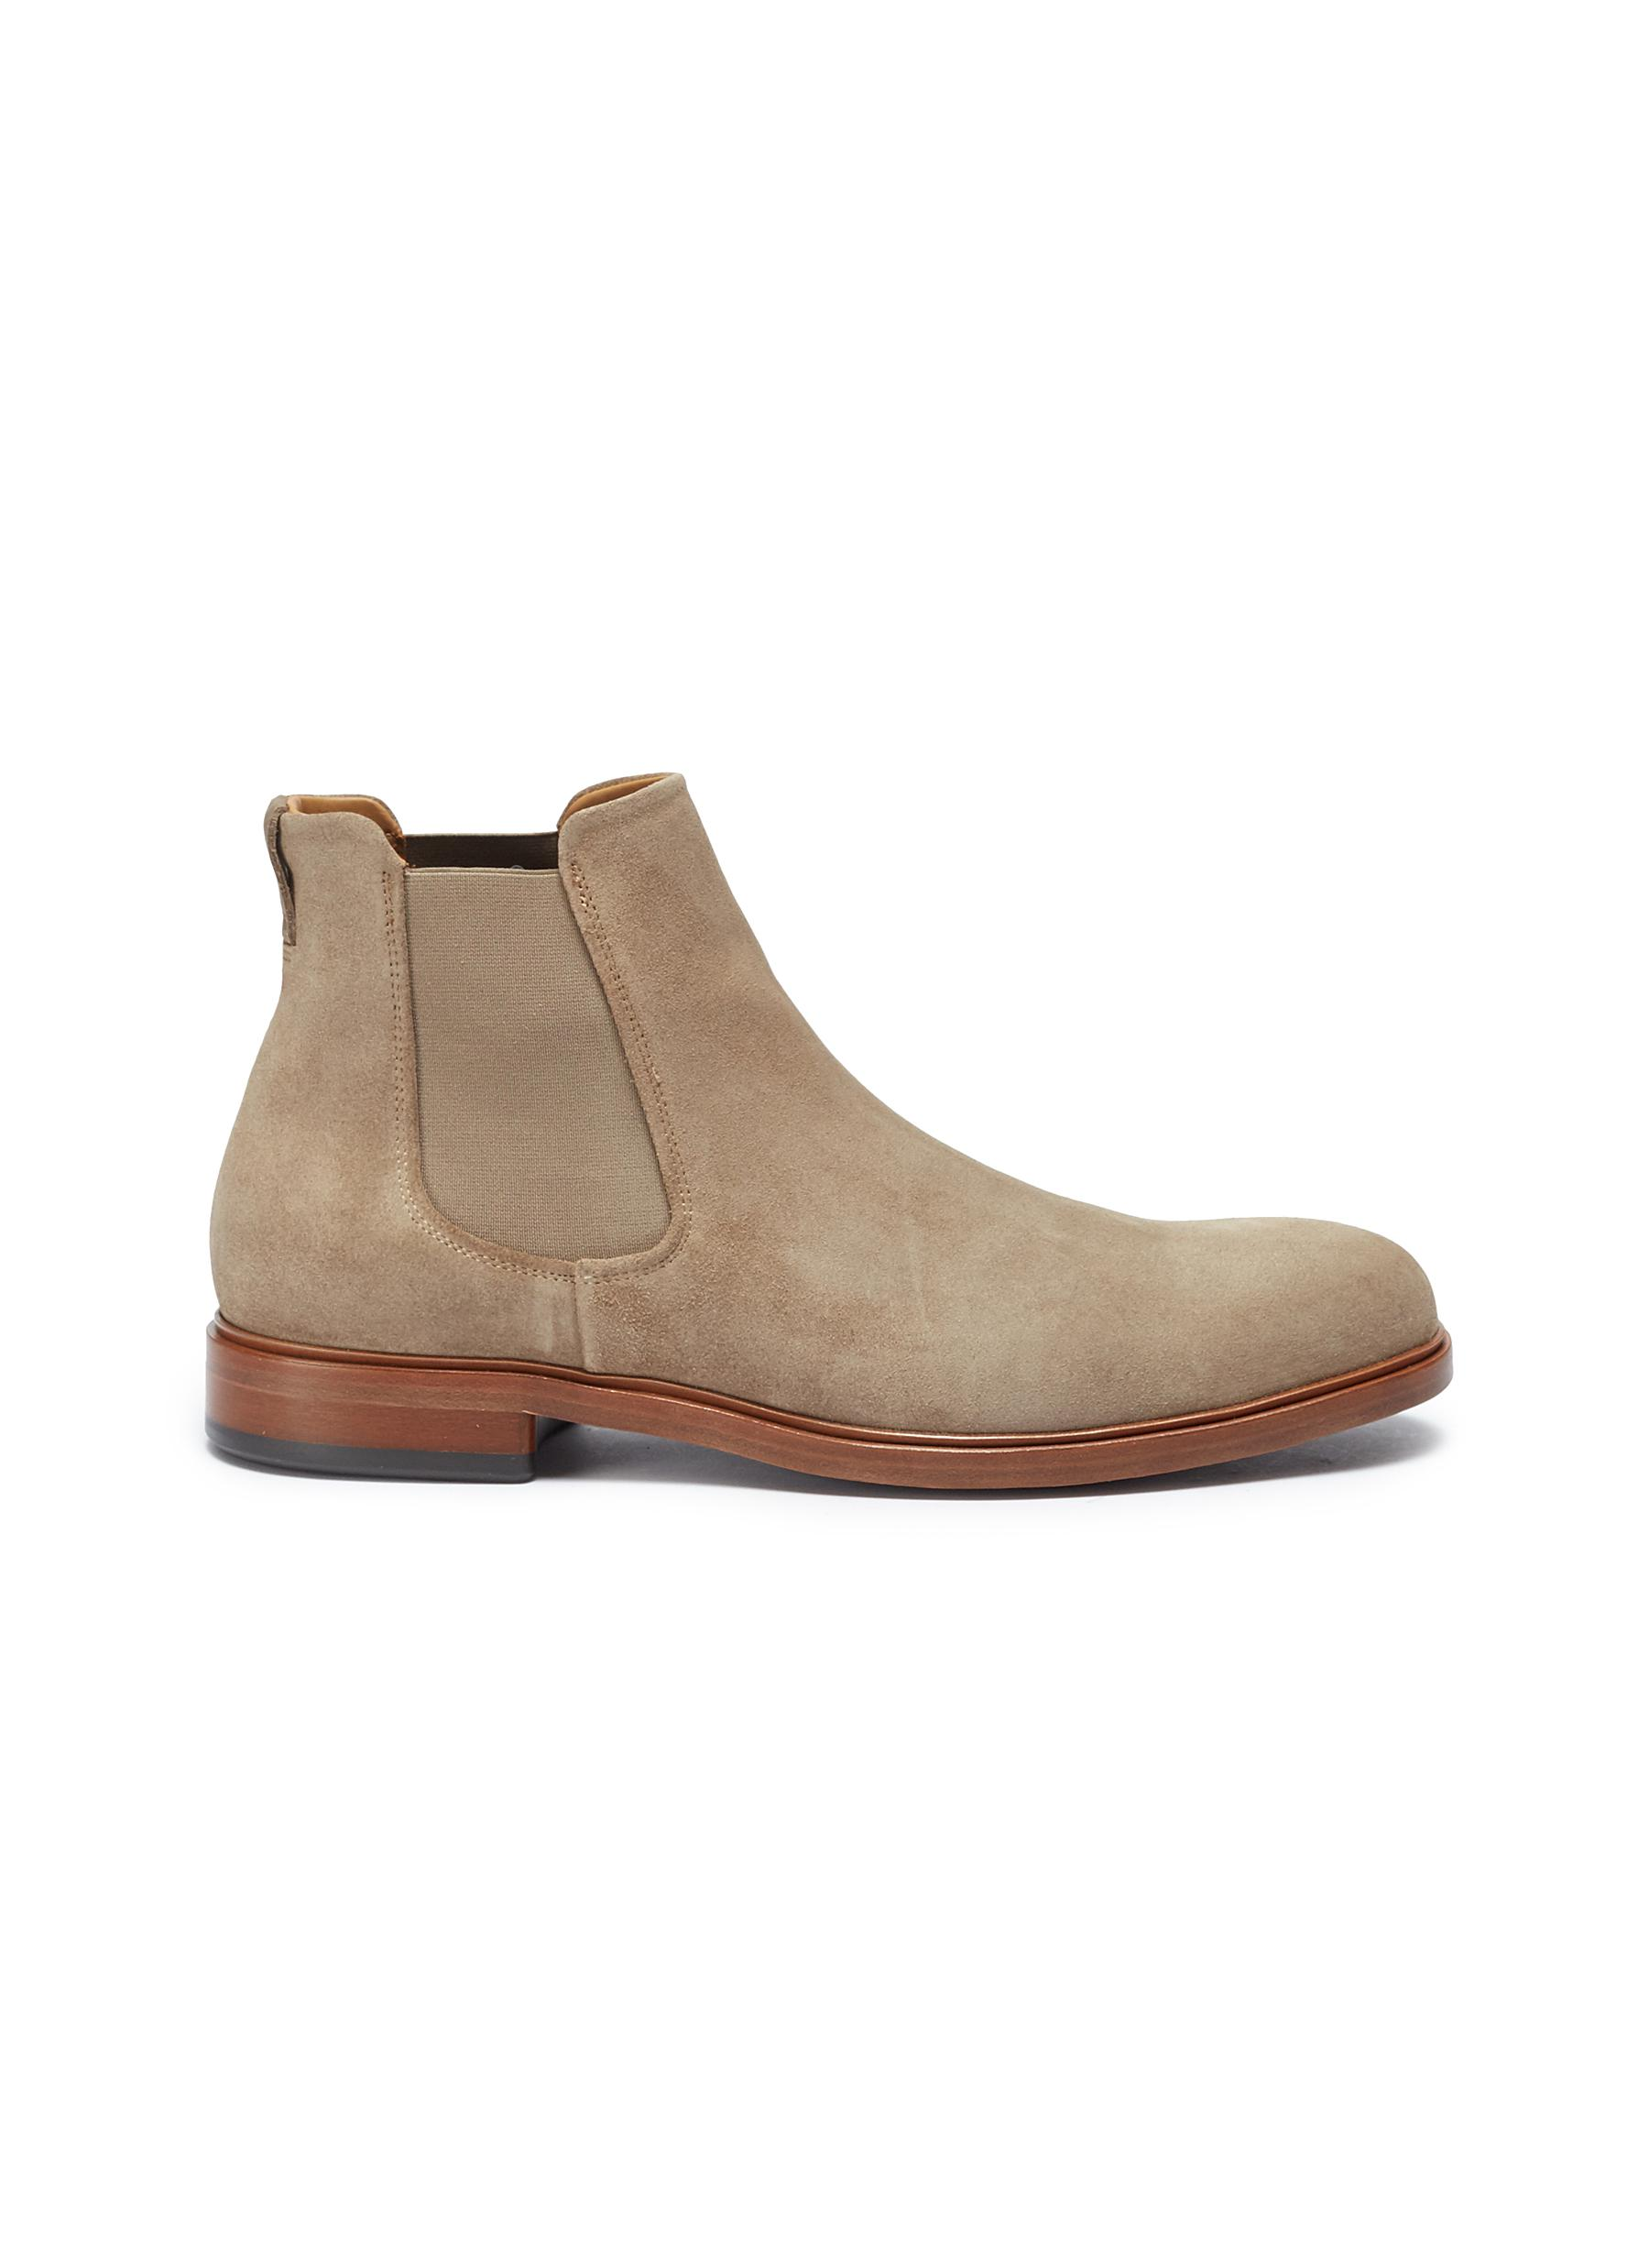 Burroughs suede Chelsea boots by Vince